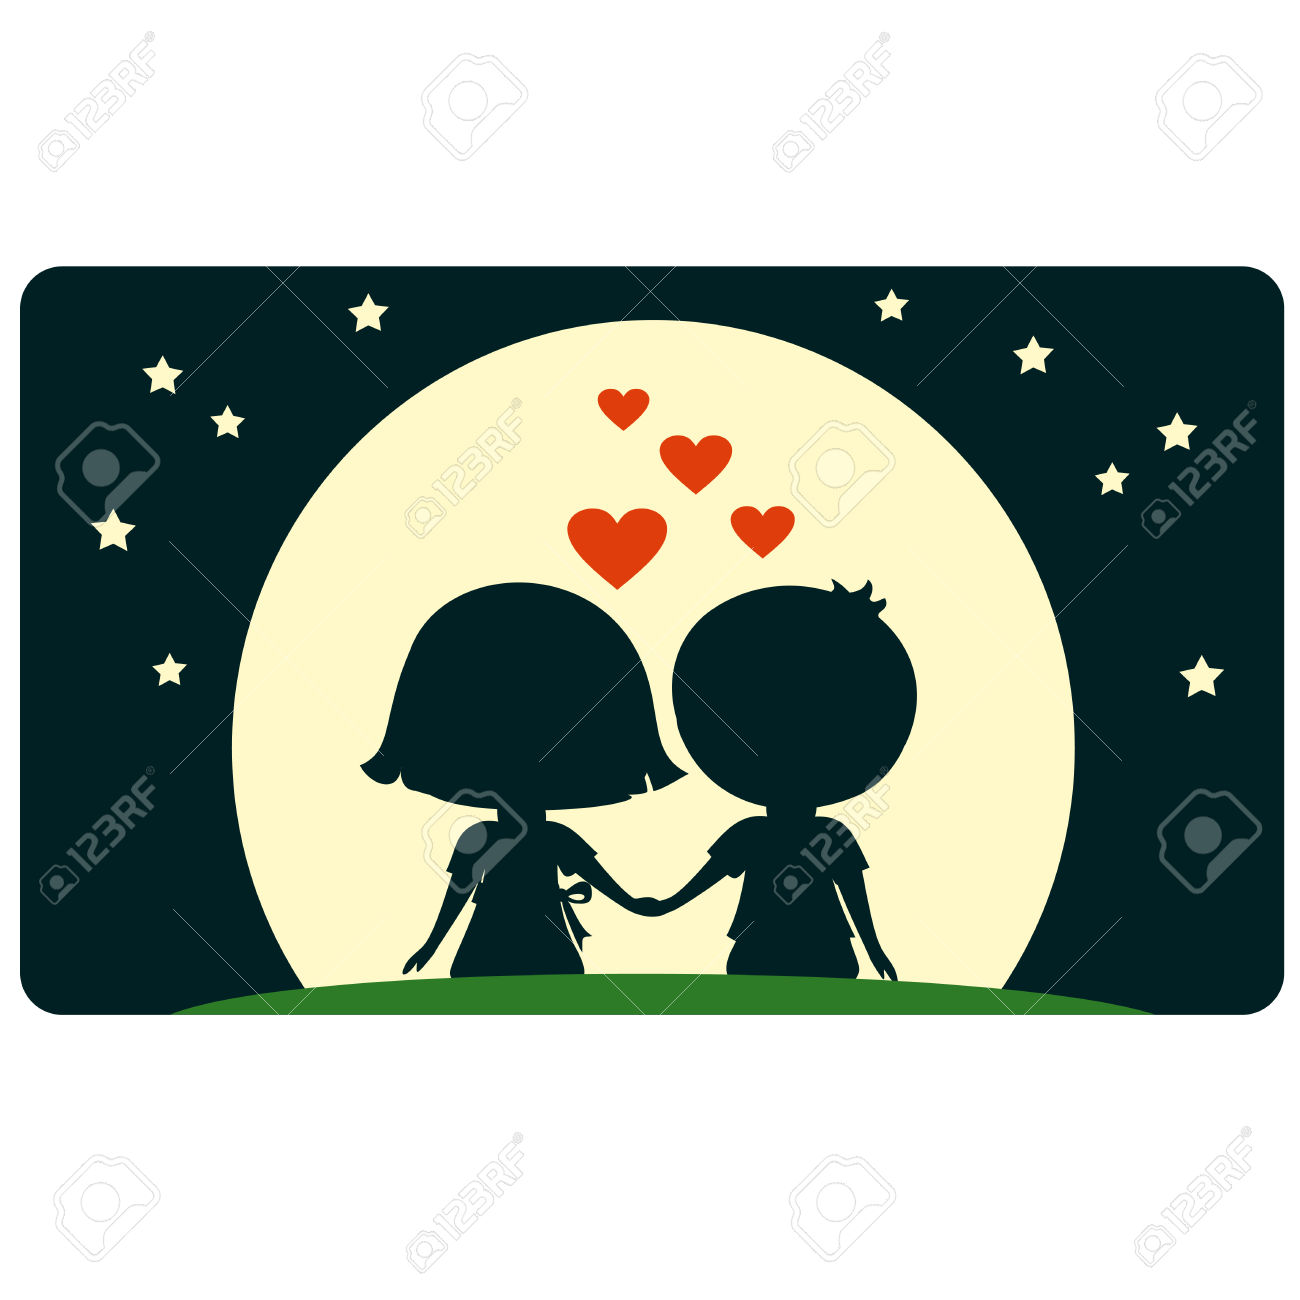 Cute Young Boy And Girl Sitting Together And Looking To The Moon.